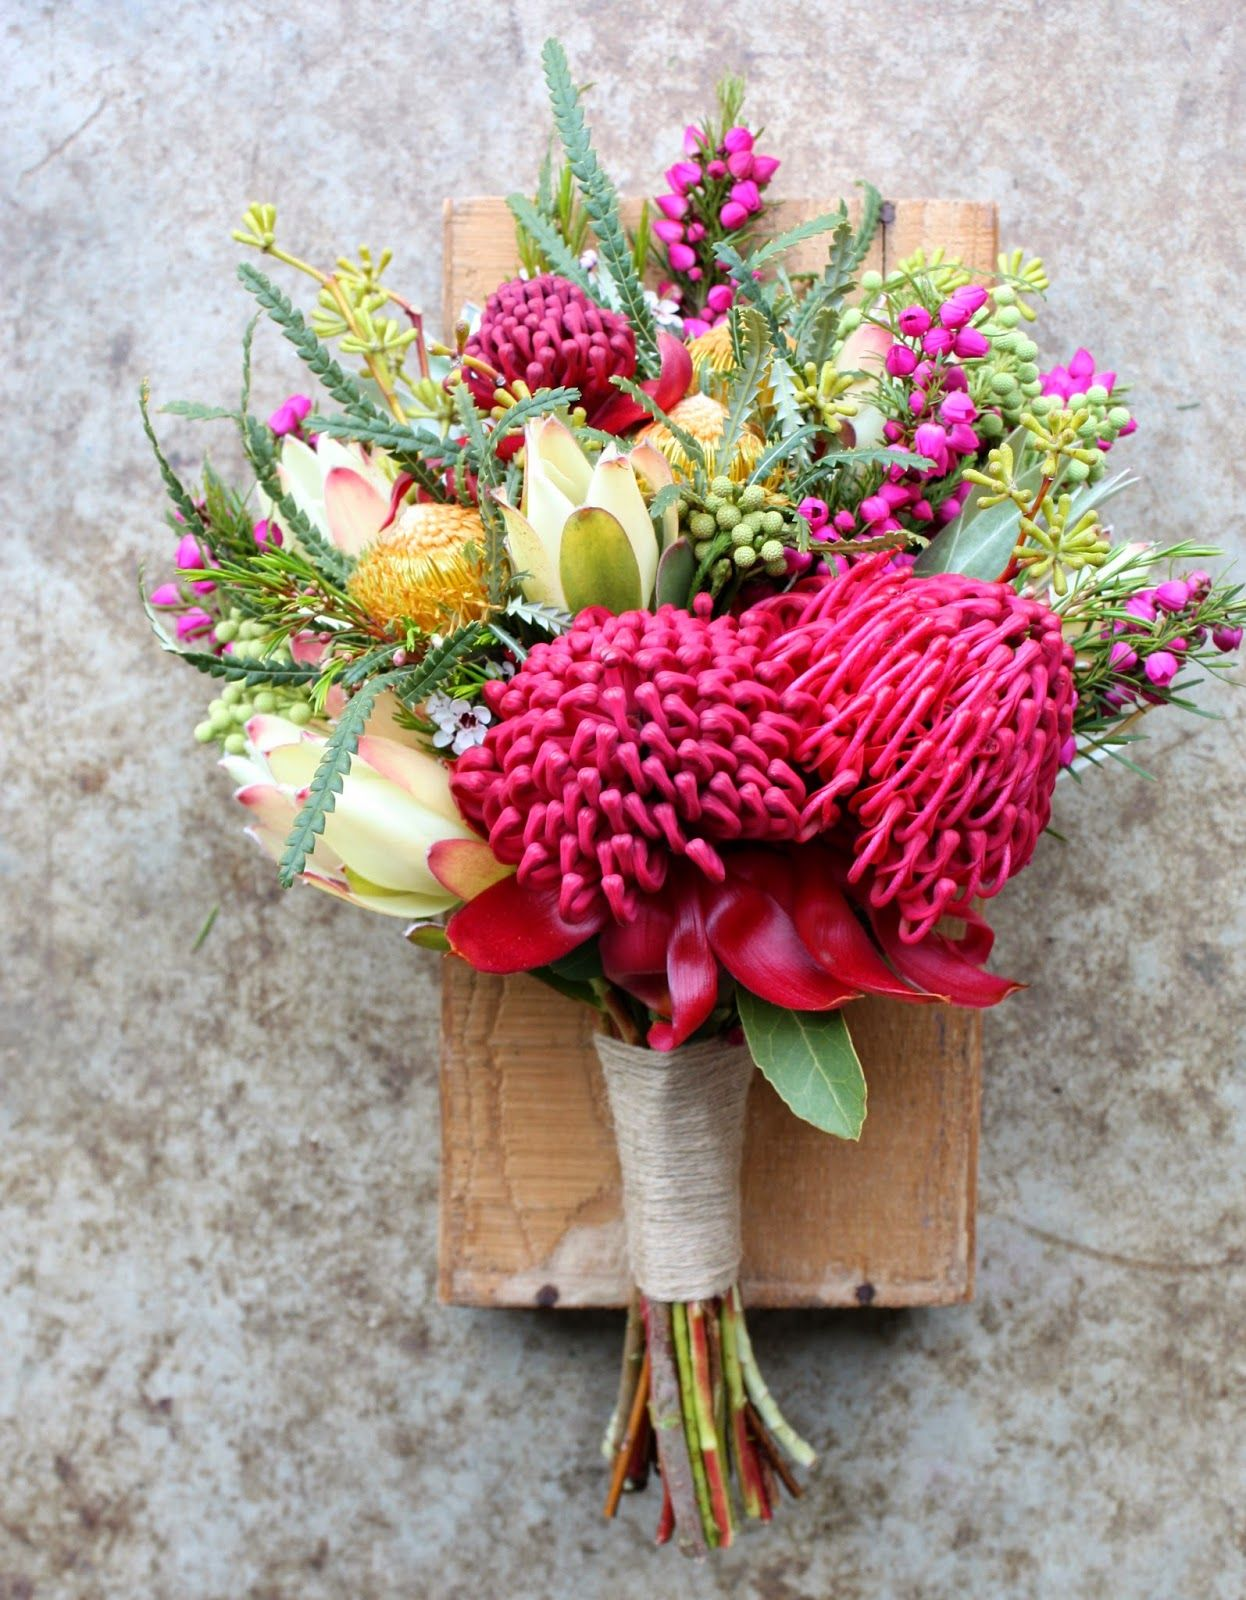 This Bouquet features Red Waratahs at the front and cream